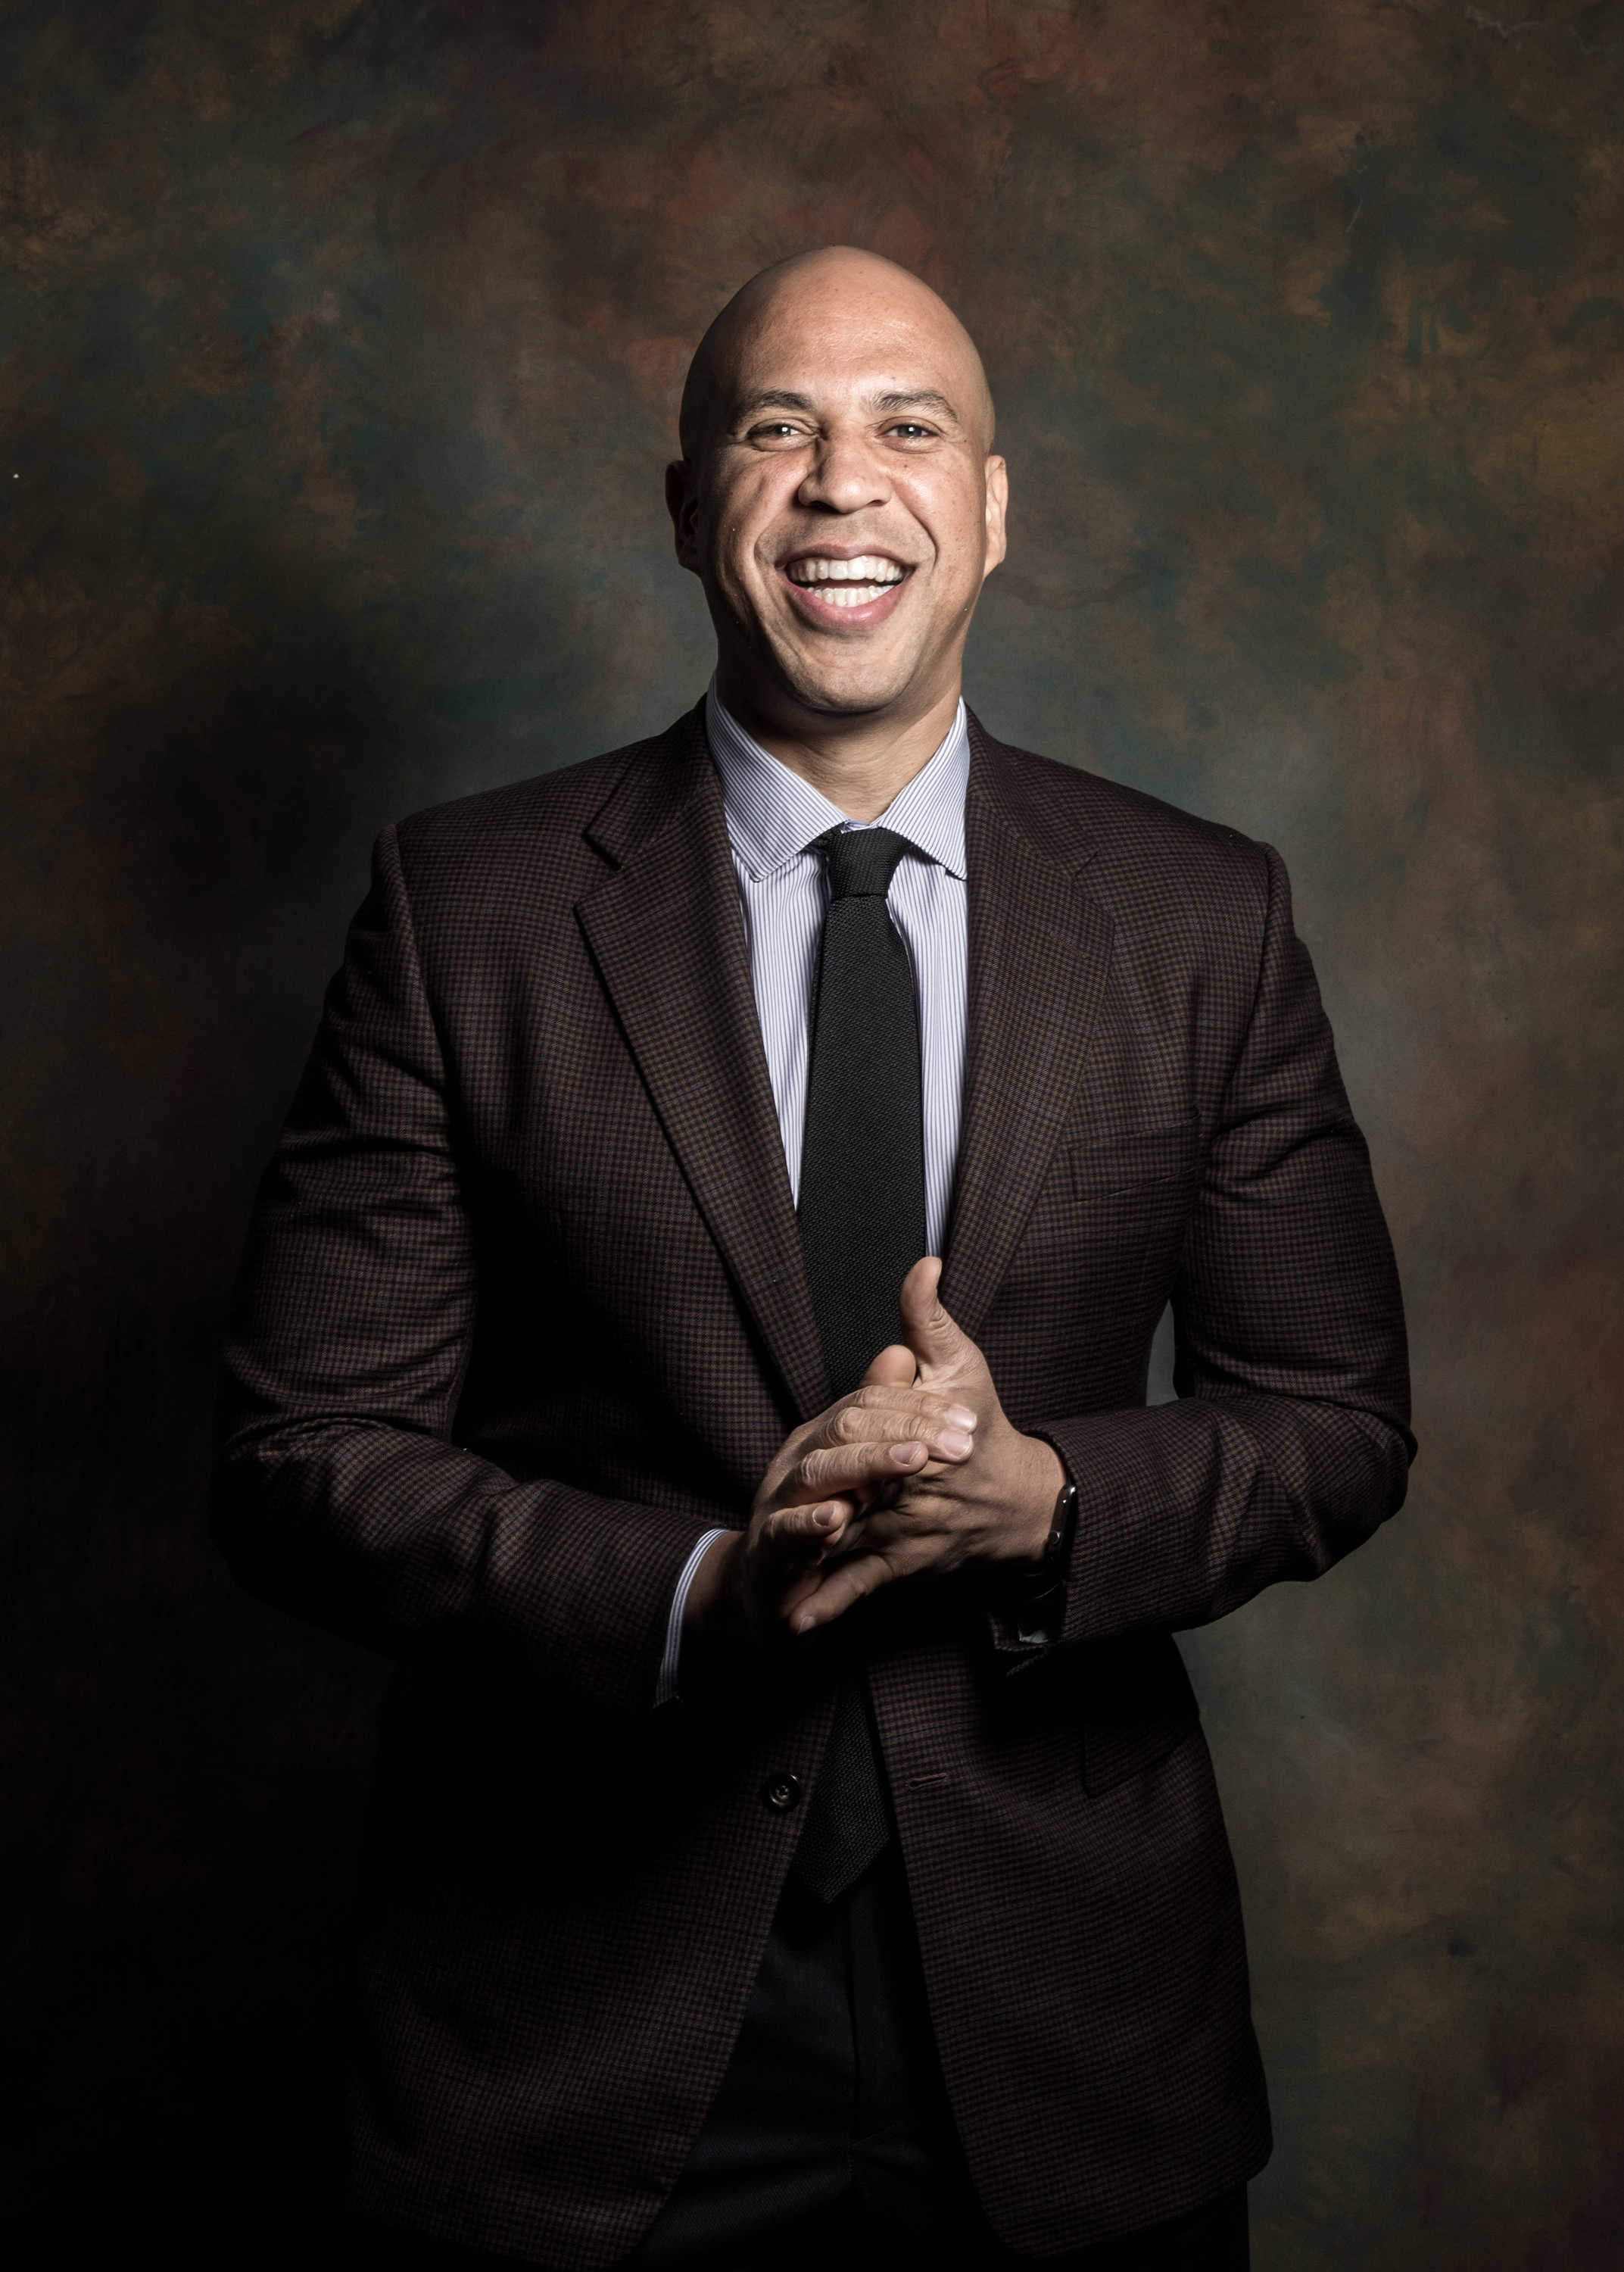 booker cory senator corybooker american jessica staff experience deeper gave connection universal joy griffin photographer